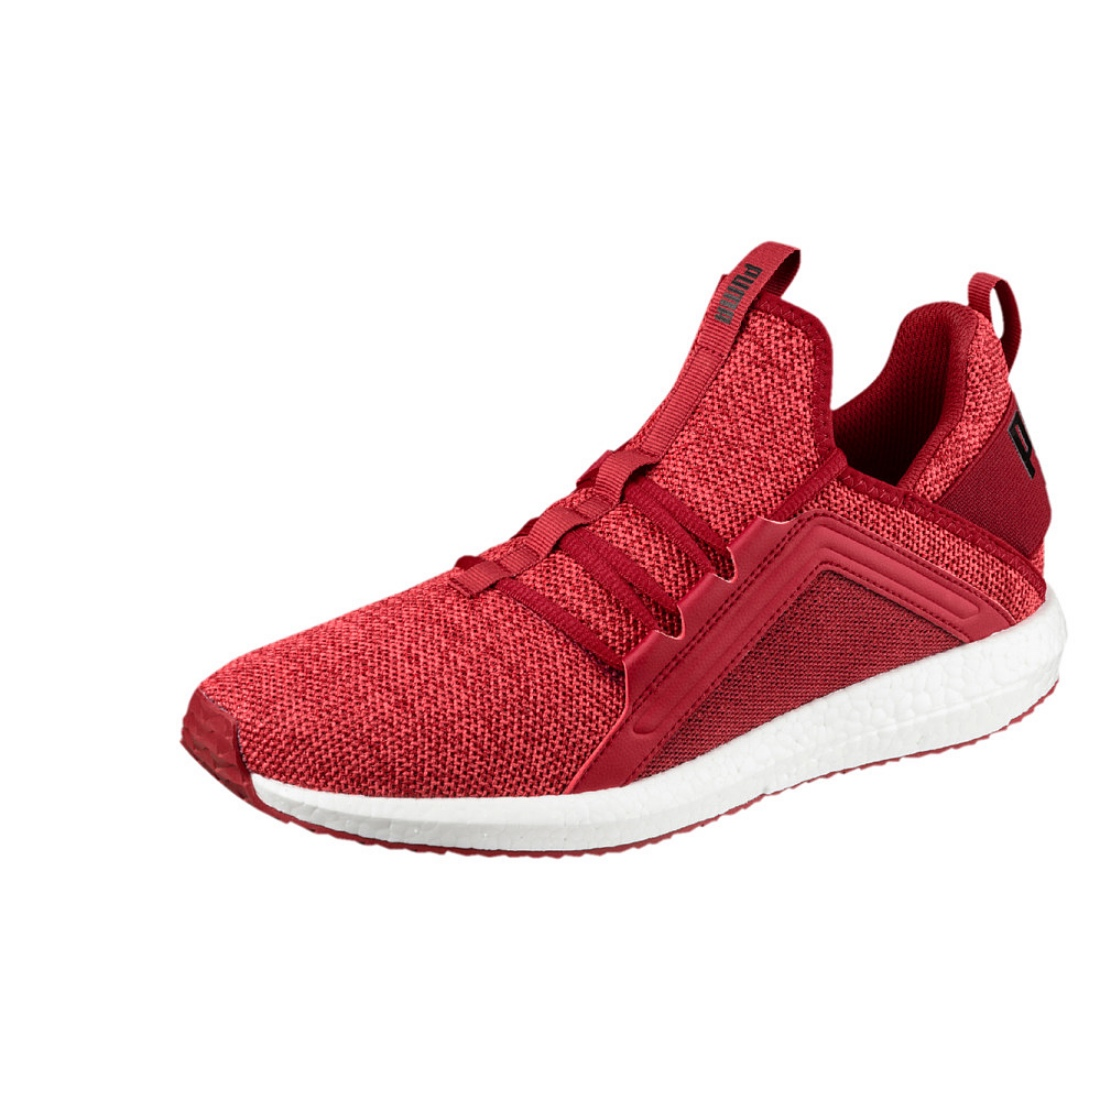 Details about Puma Mega Nrgy Knit Running Shoes Fitness Shoes Trainers  190371 Dahlia Red Offer 860927e4c